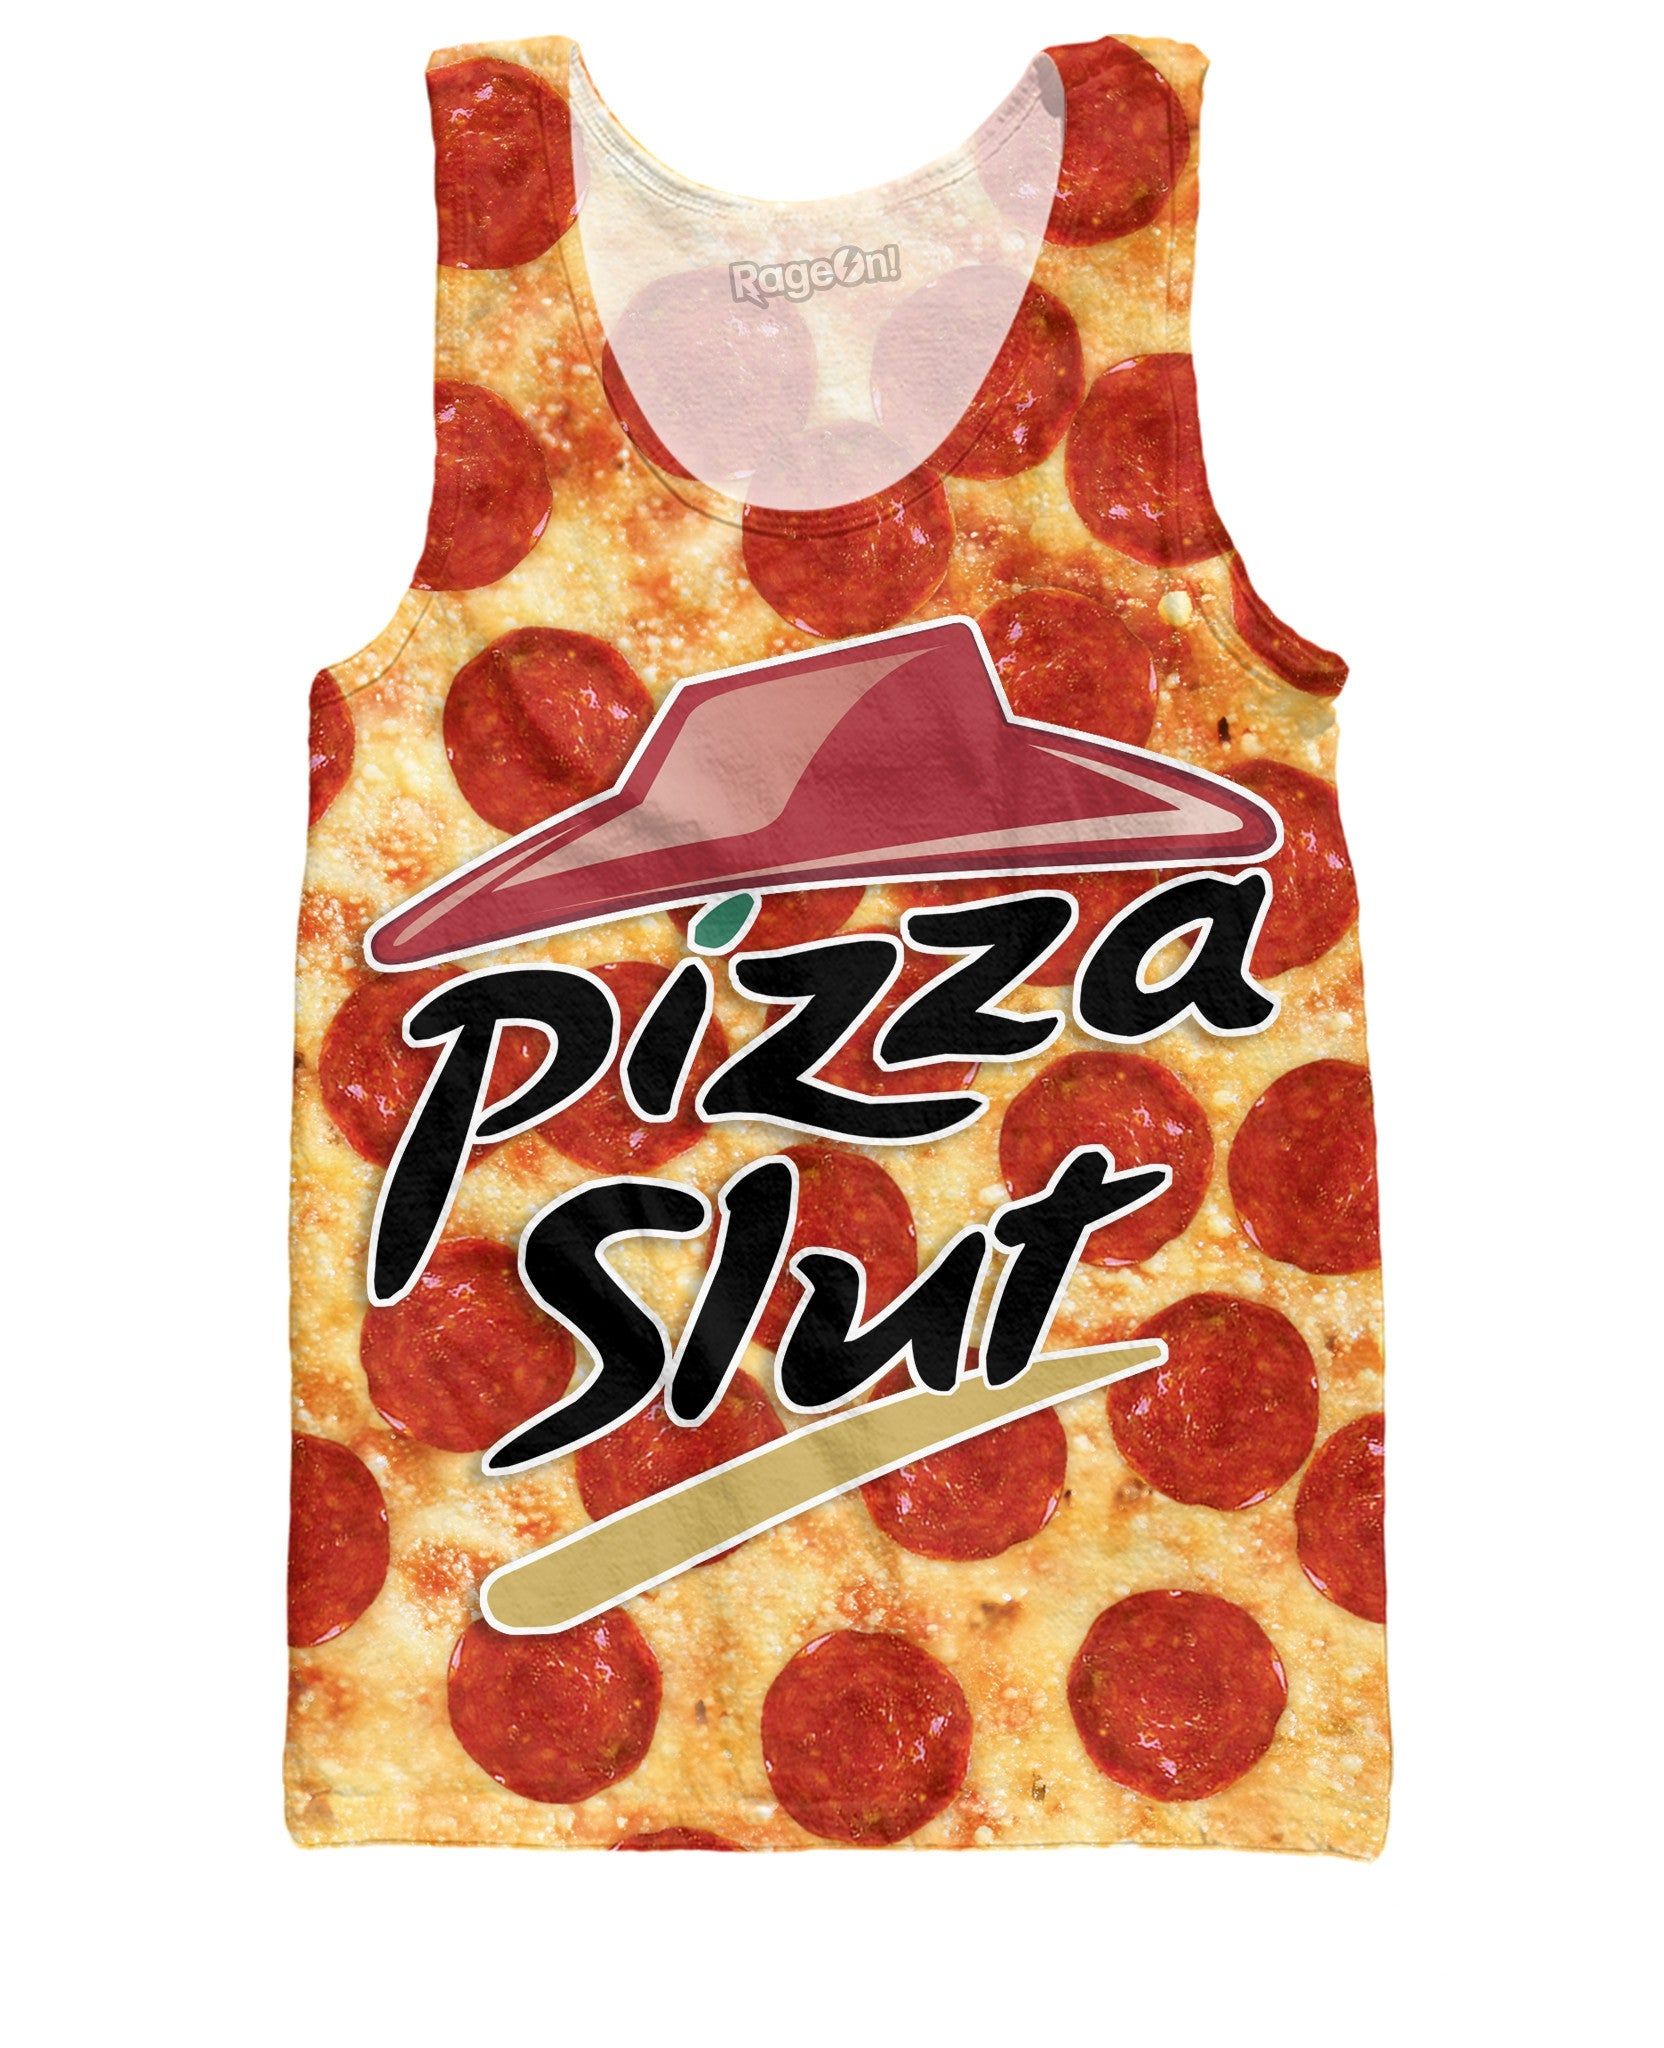 Really a Pizza Slut Tank Top